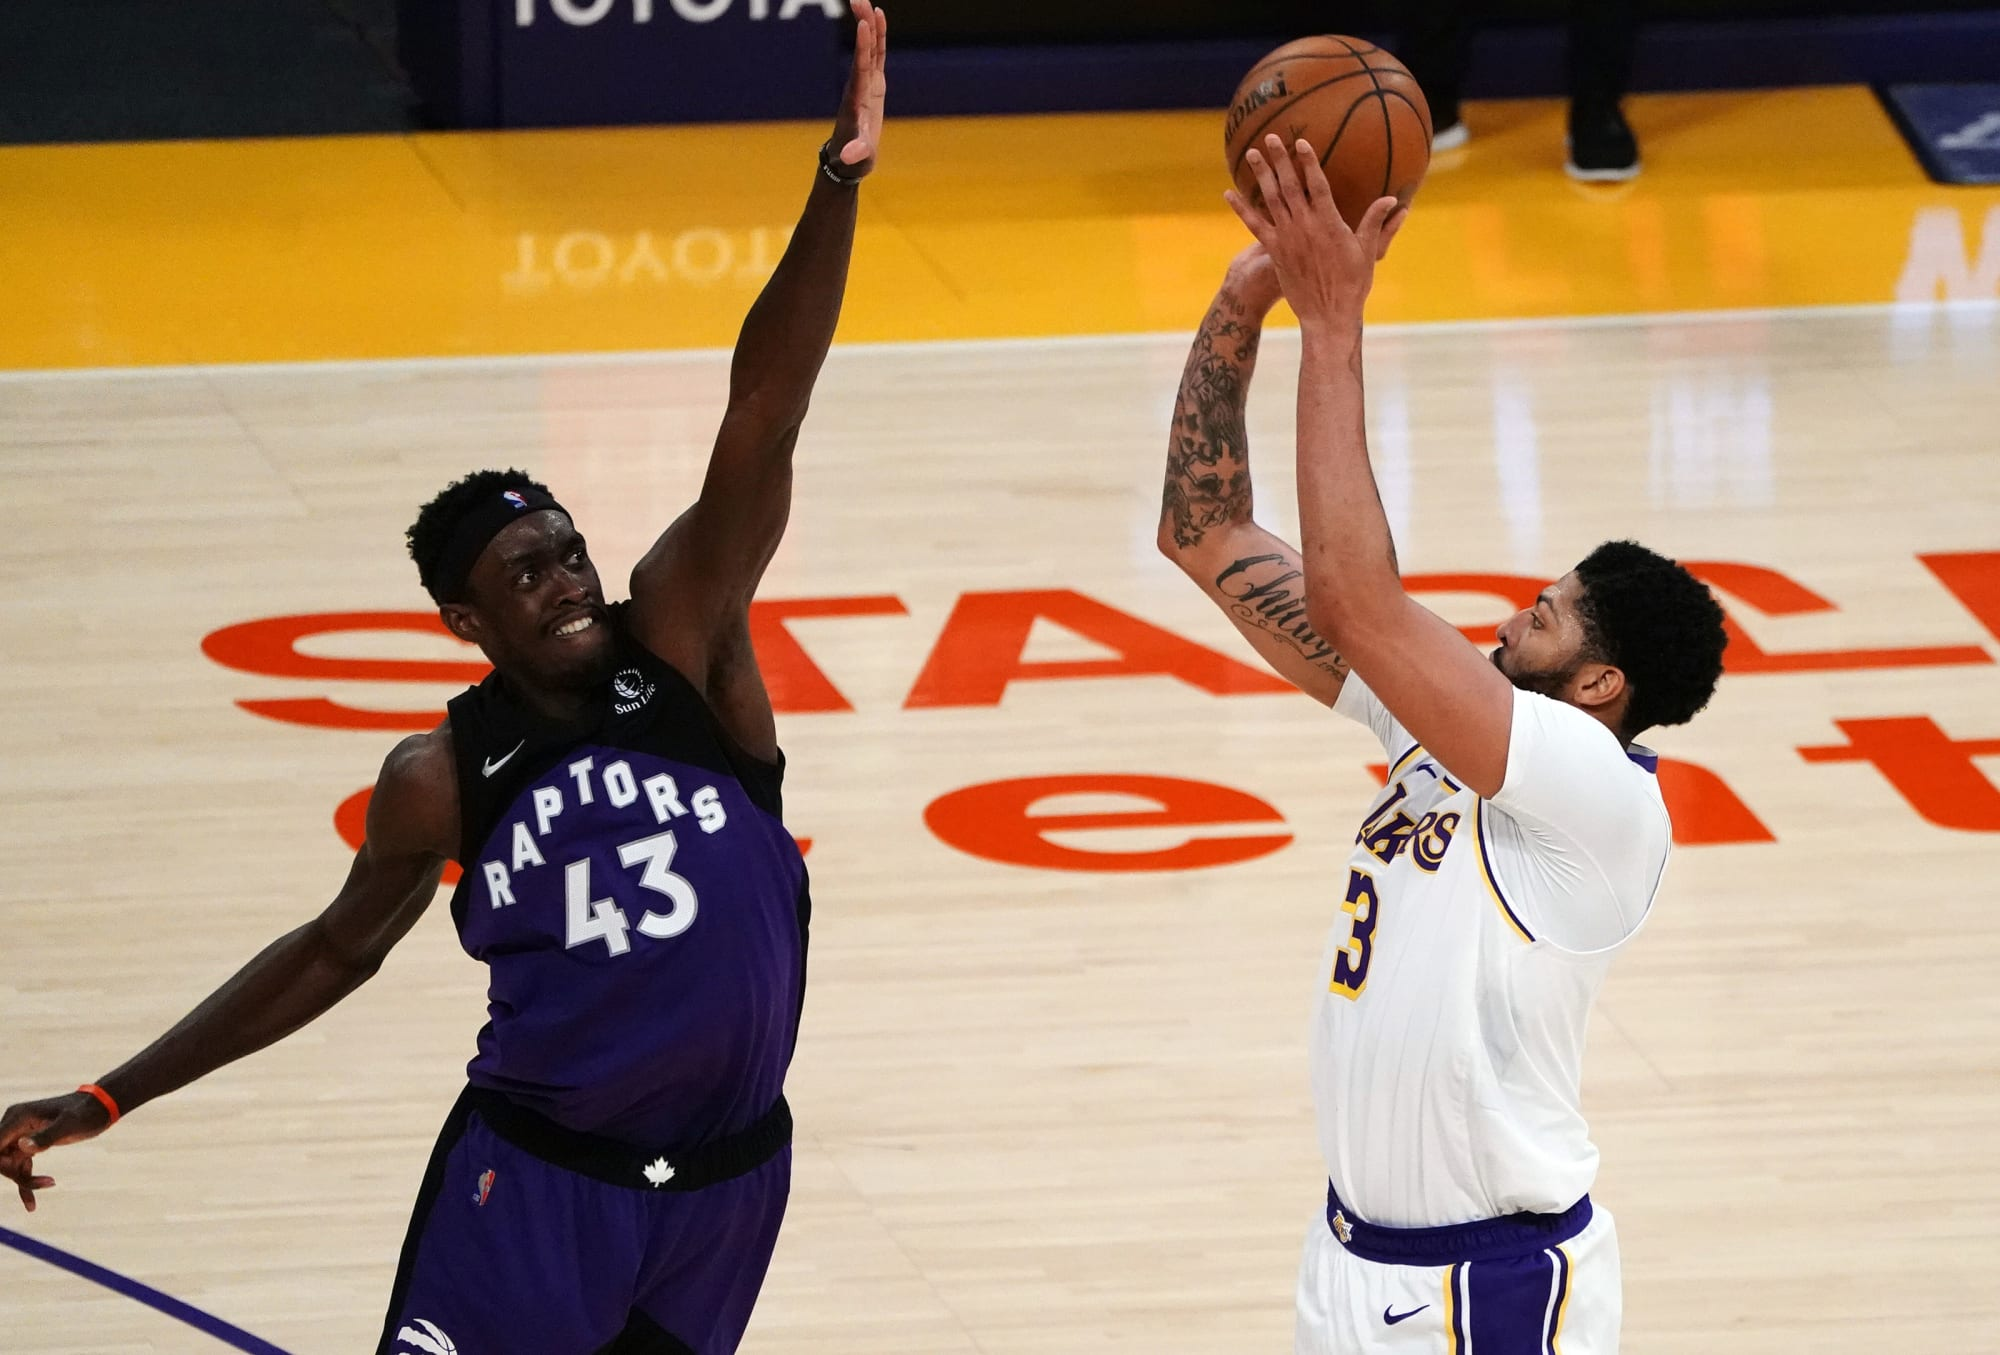 Toronto Raptors: Pascal Siakam can't be slandered after dominating Lakers